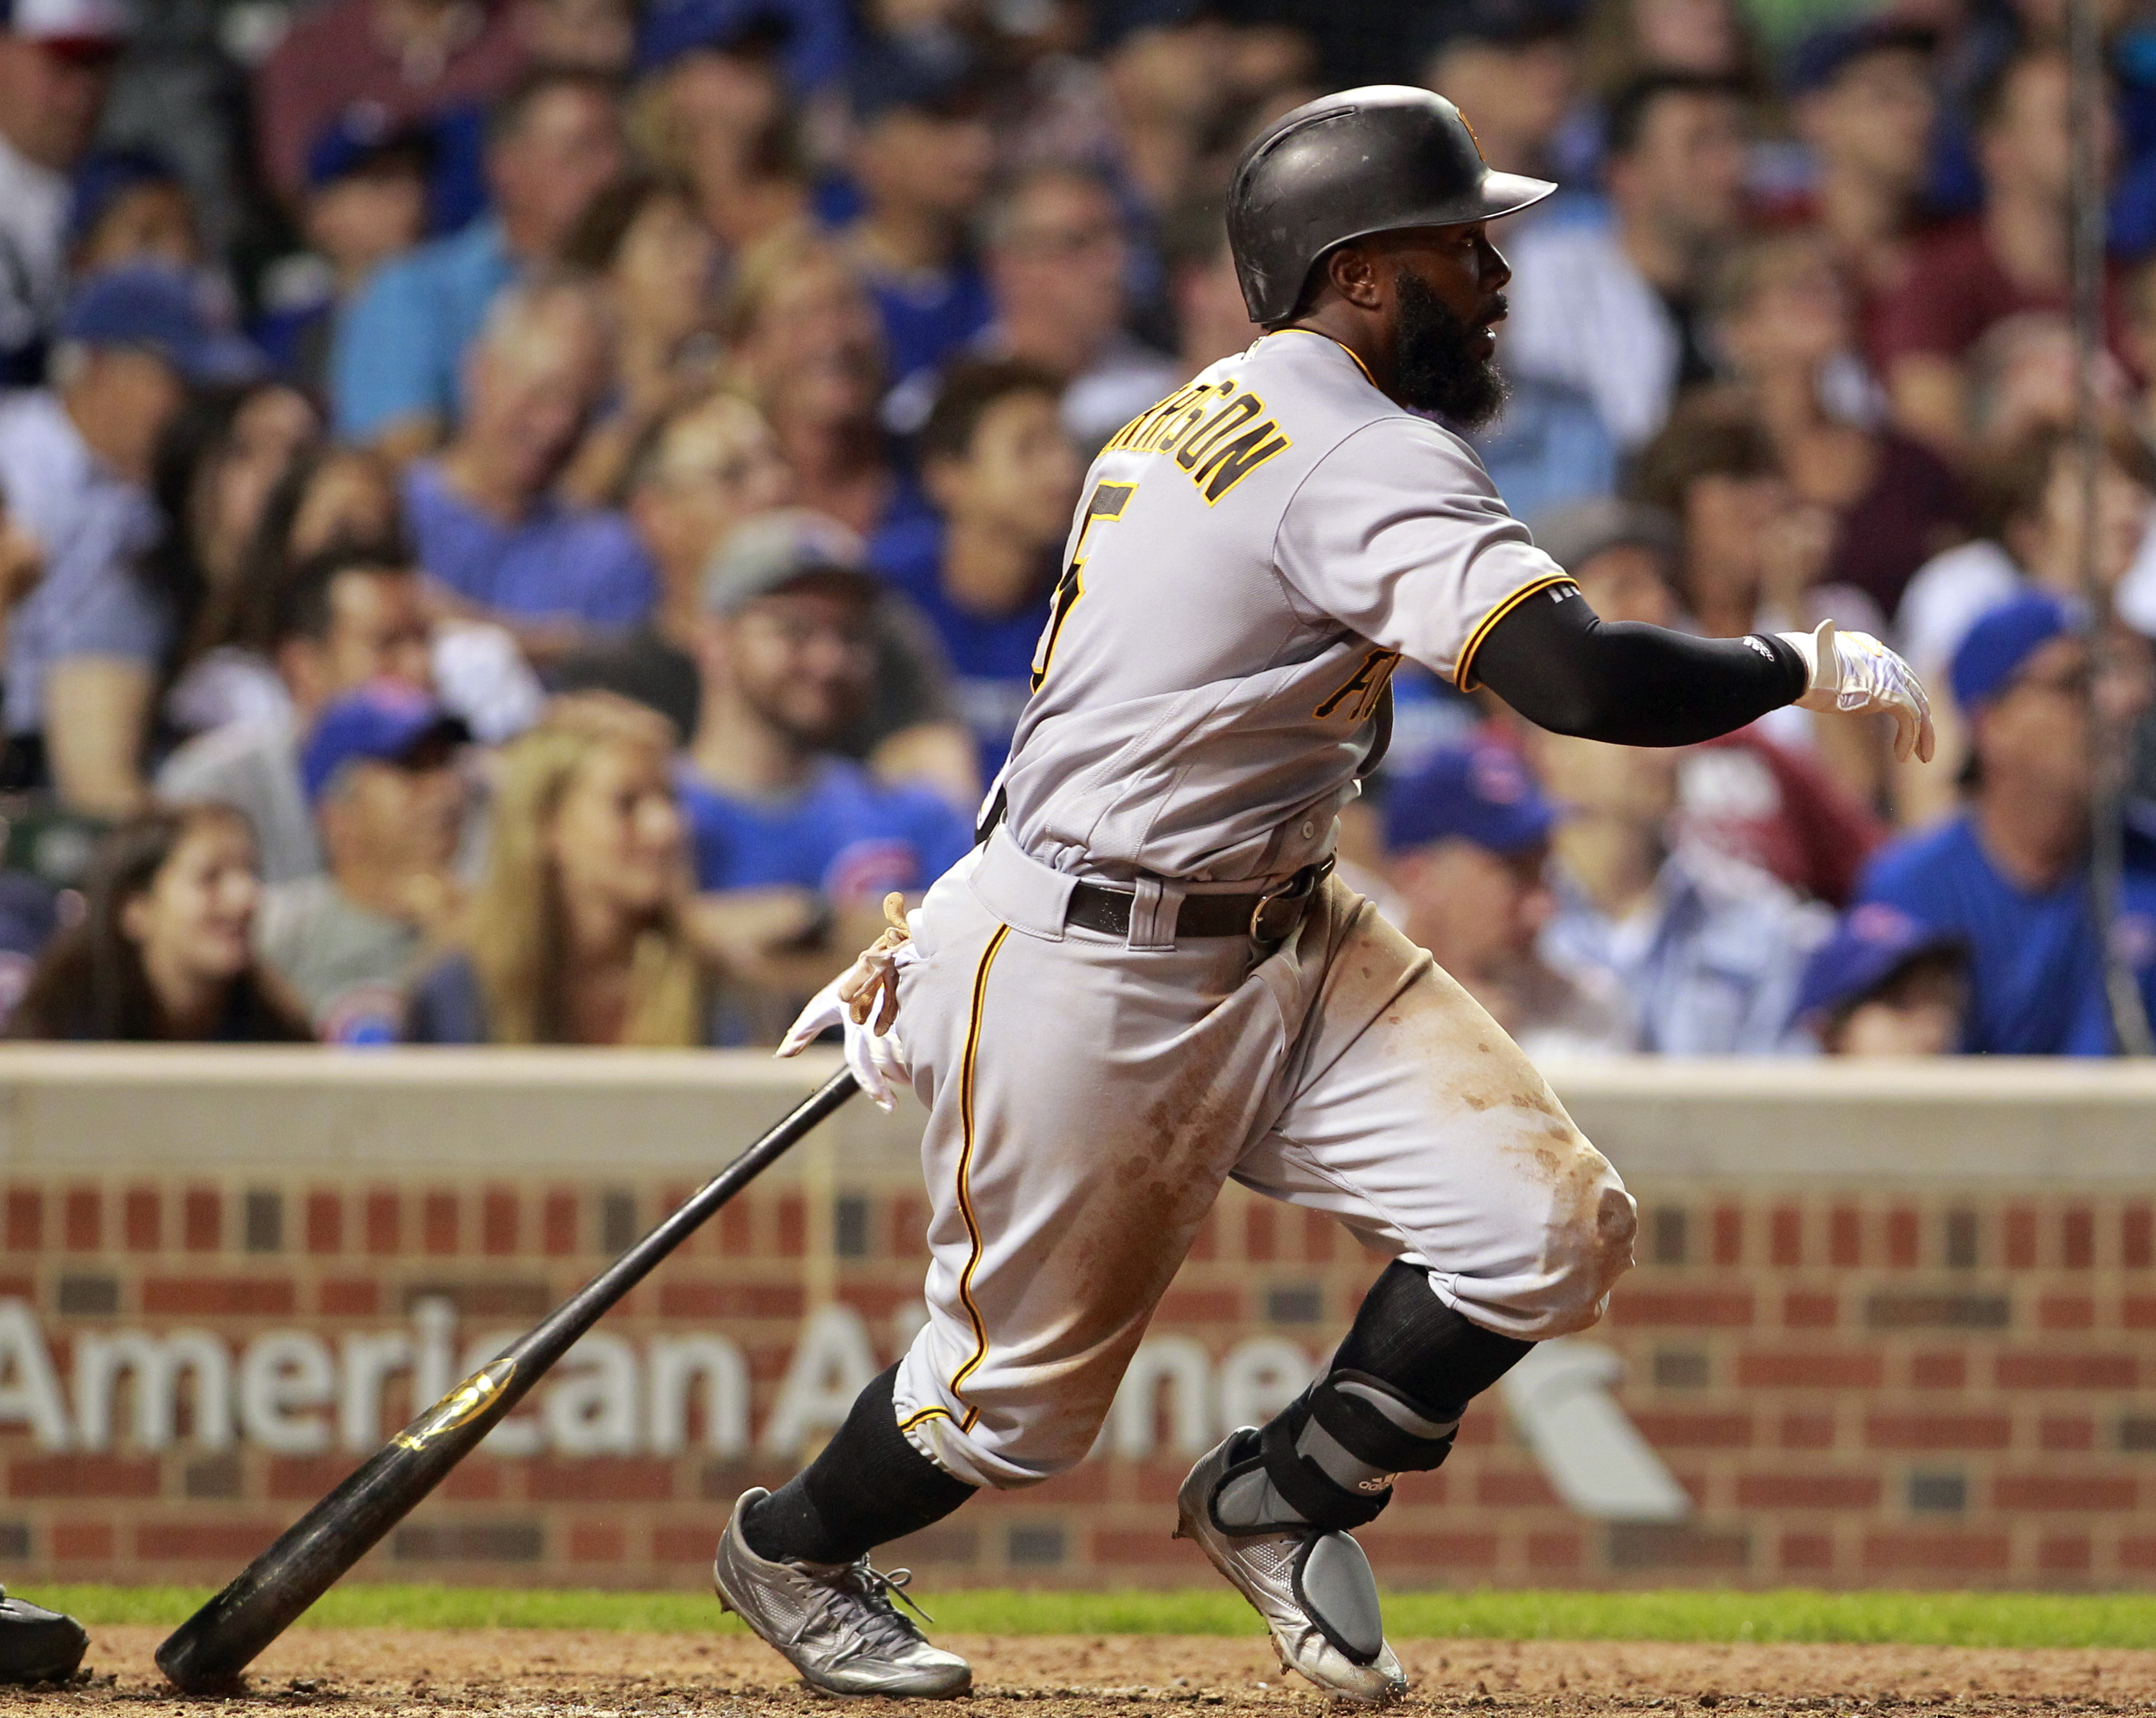 Aug 29, 2016; Chicago, IL, USA; Pittsburgh Pirates second baseman Josh Harrison (5) hits a two run RBI double during the seventh inning against the Chicago Cubs at Wrigley Field. Mandatory Credit: Caylor Arnold-USA TODAY Sports